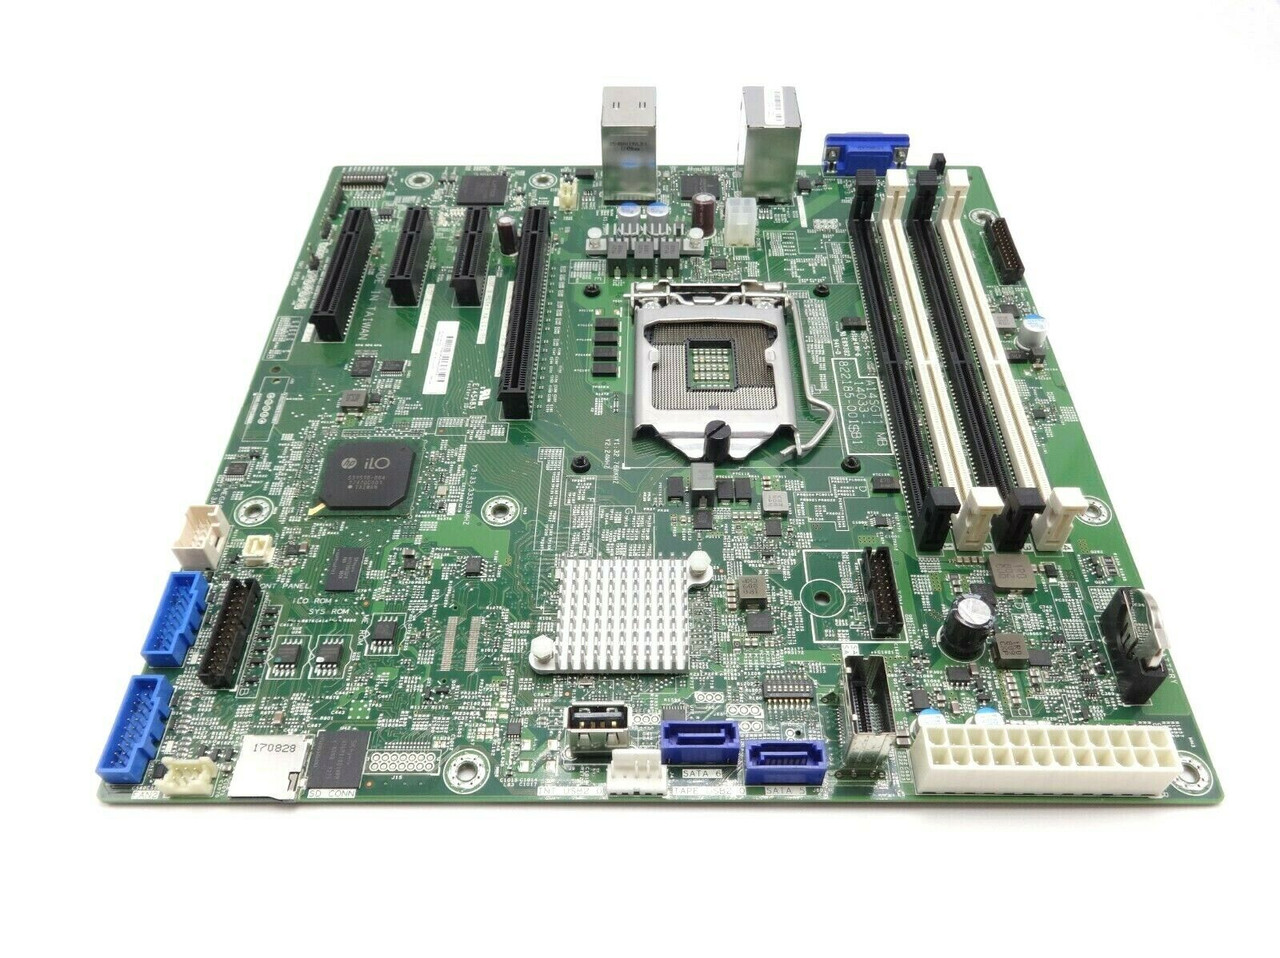 HP HPe 873607-001 ML30 G9 Gen9 System Board